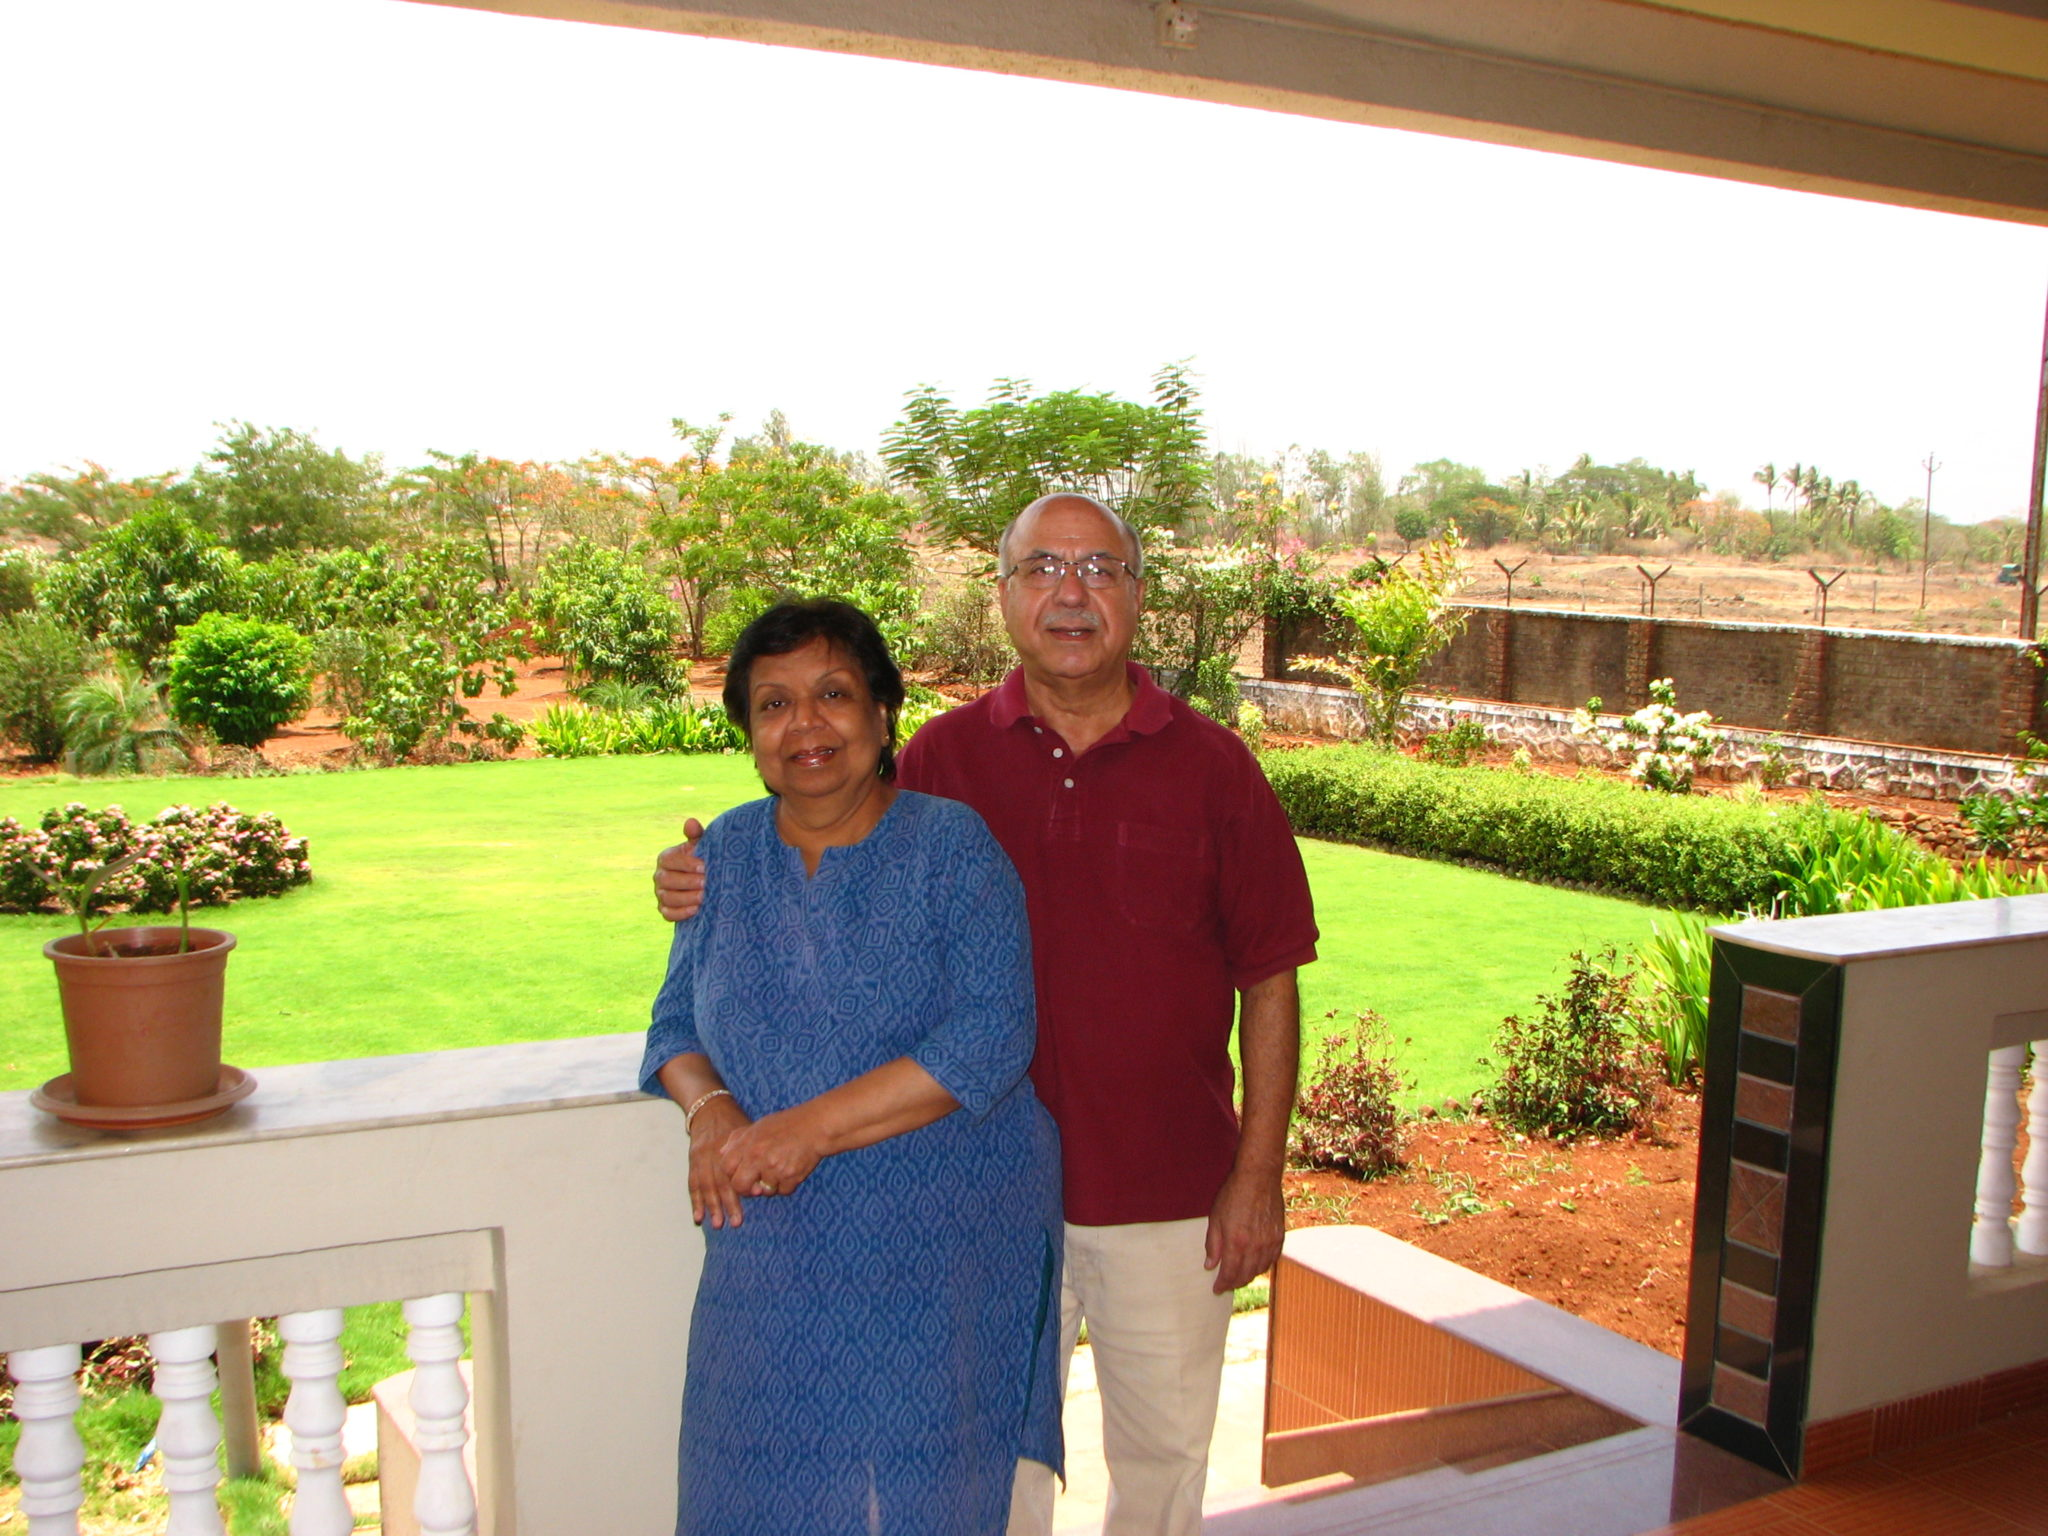 Dr Om and Chandra Kaul's home away from home in Karjat